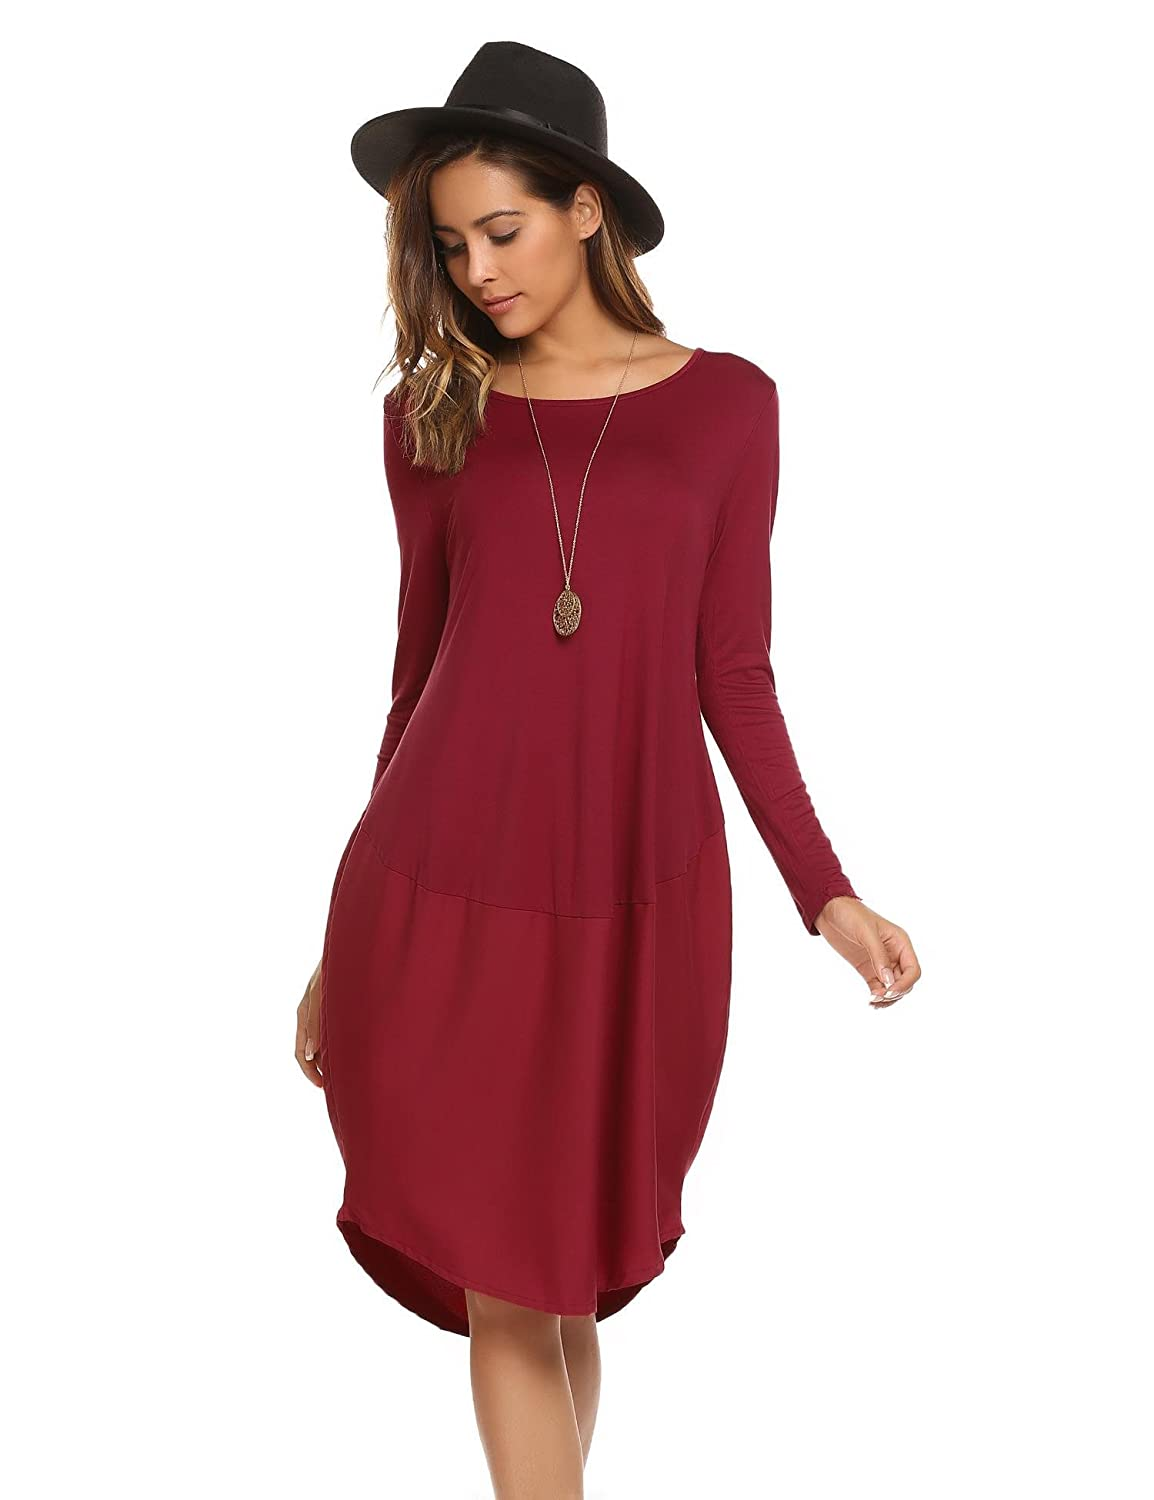 Meaneor Women's Casual Loose Fit Bubble Hem Dress Long Sleeve Tunic Dresses ##MAH017734